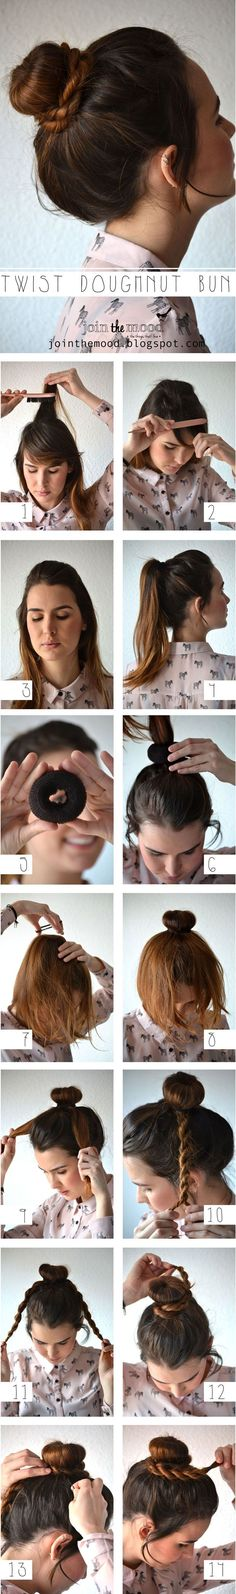 Twist doughnut bun! We love how the twist wrapped around a standard bun makes it fun and beautiful! Try something different this summer with all the best hair products from your local Duane Reade.